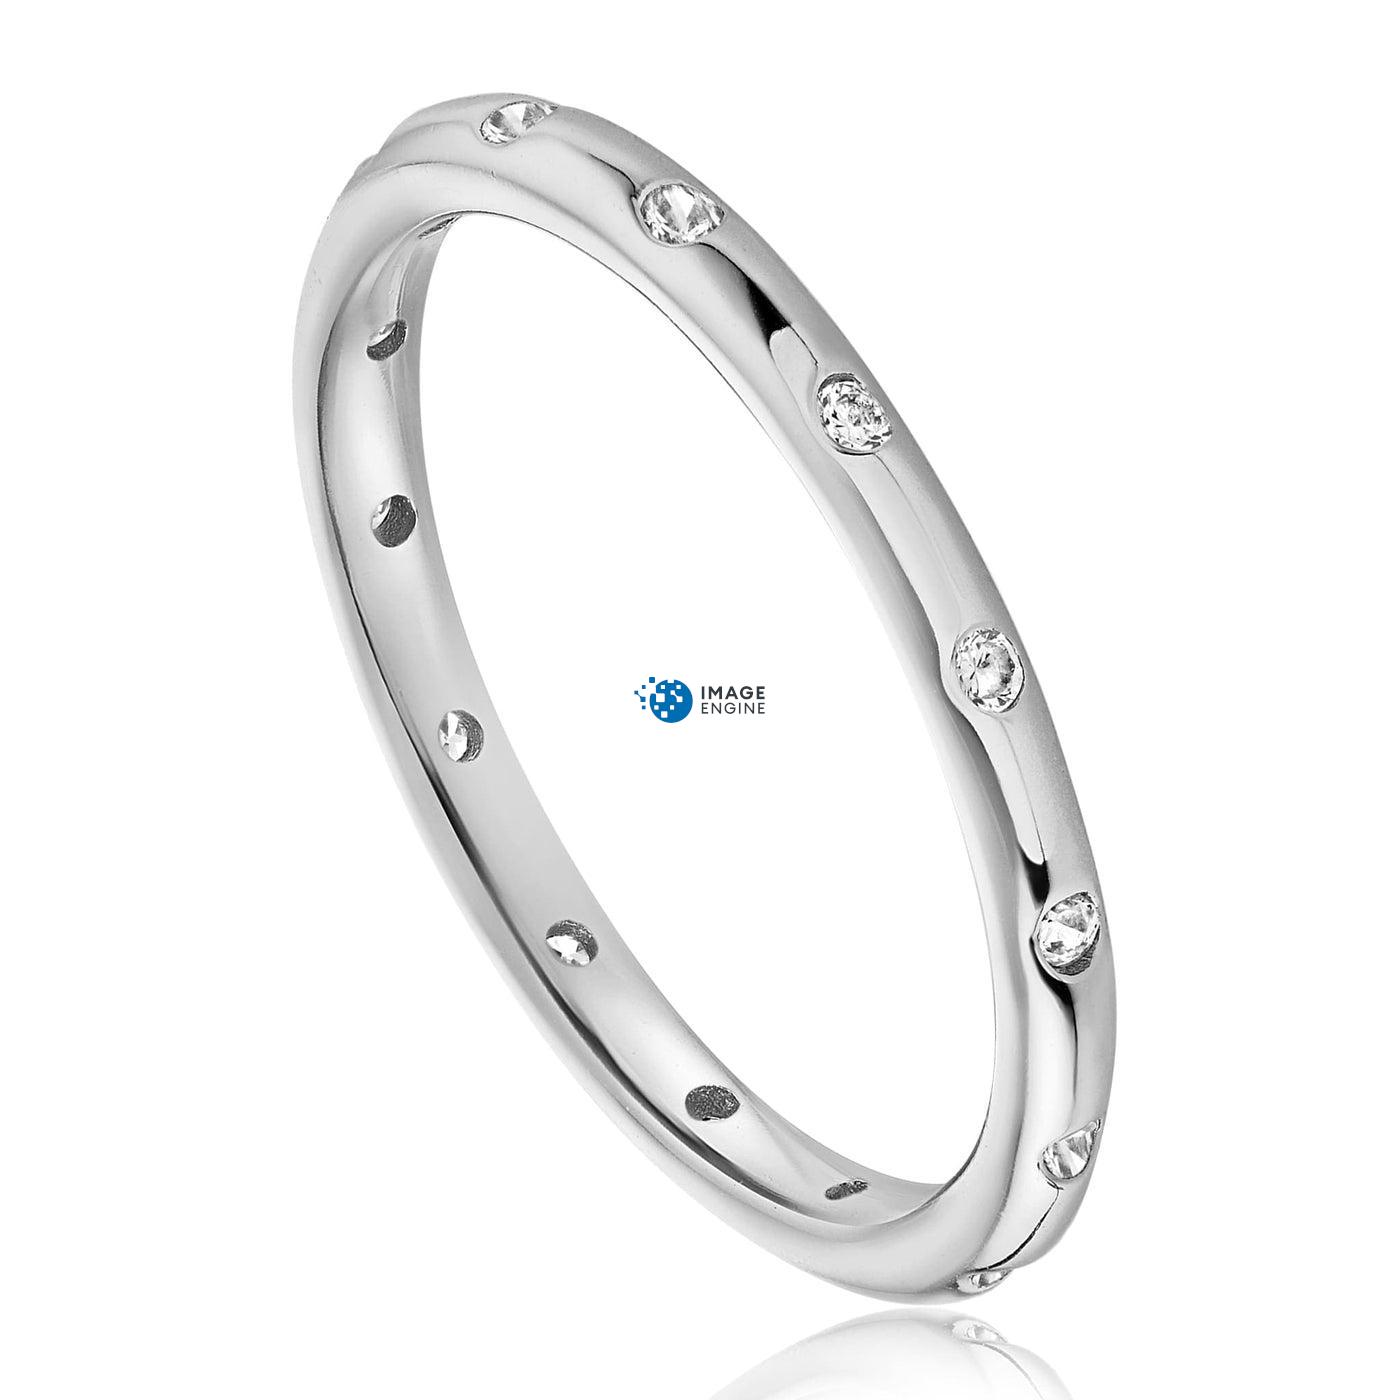 Droplet Ring - Three Quarter View - 925 Sterling Silver